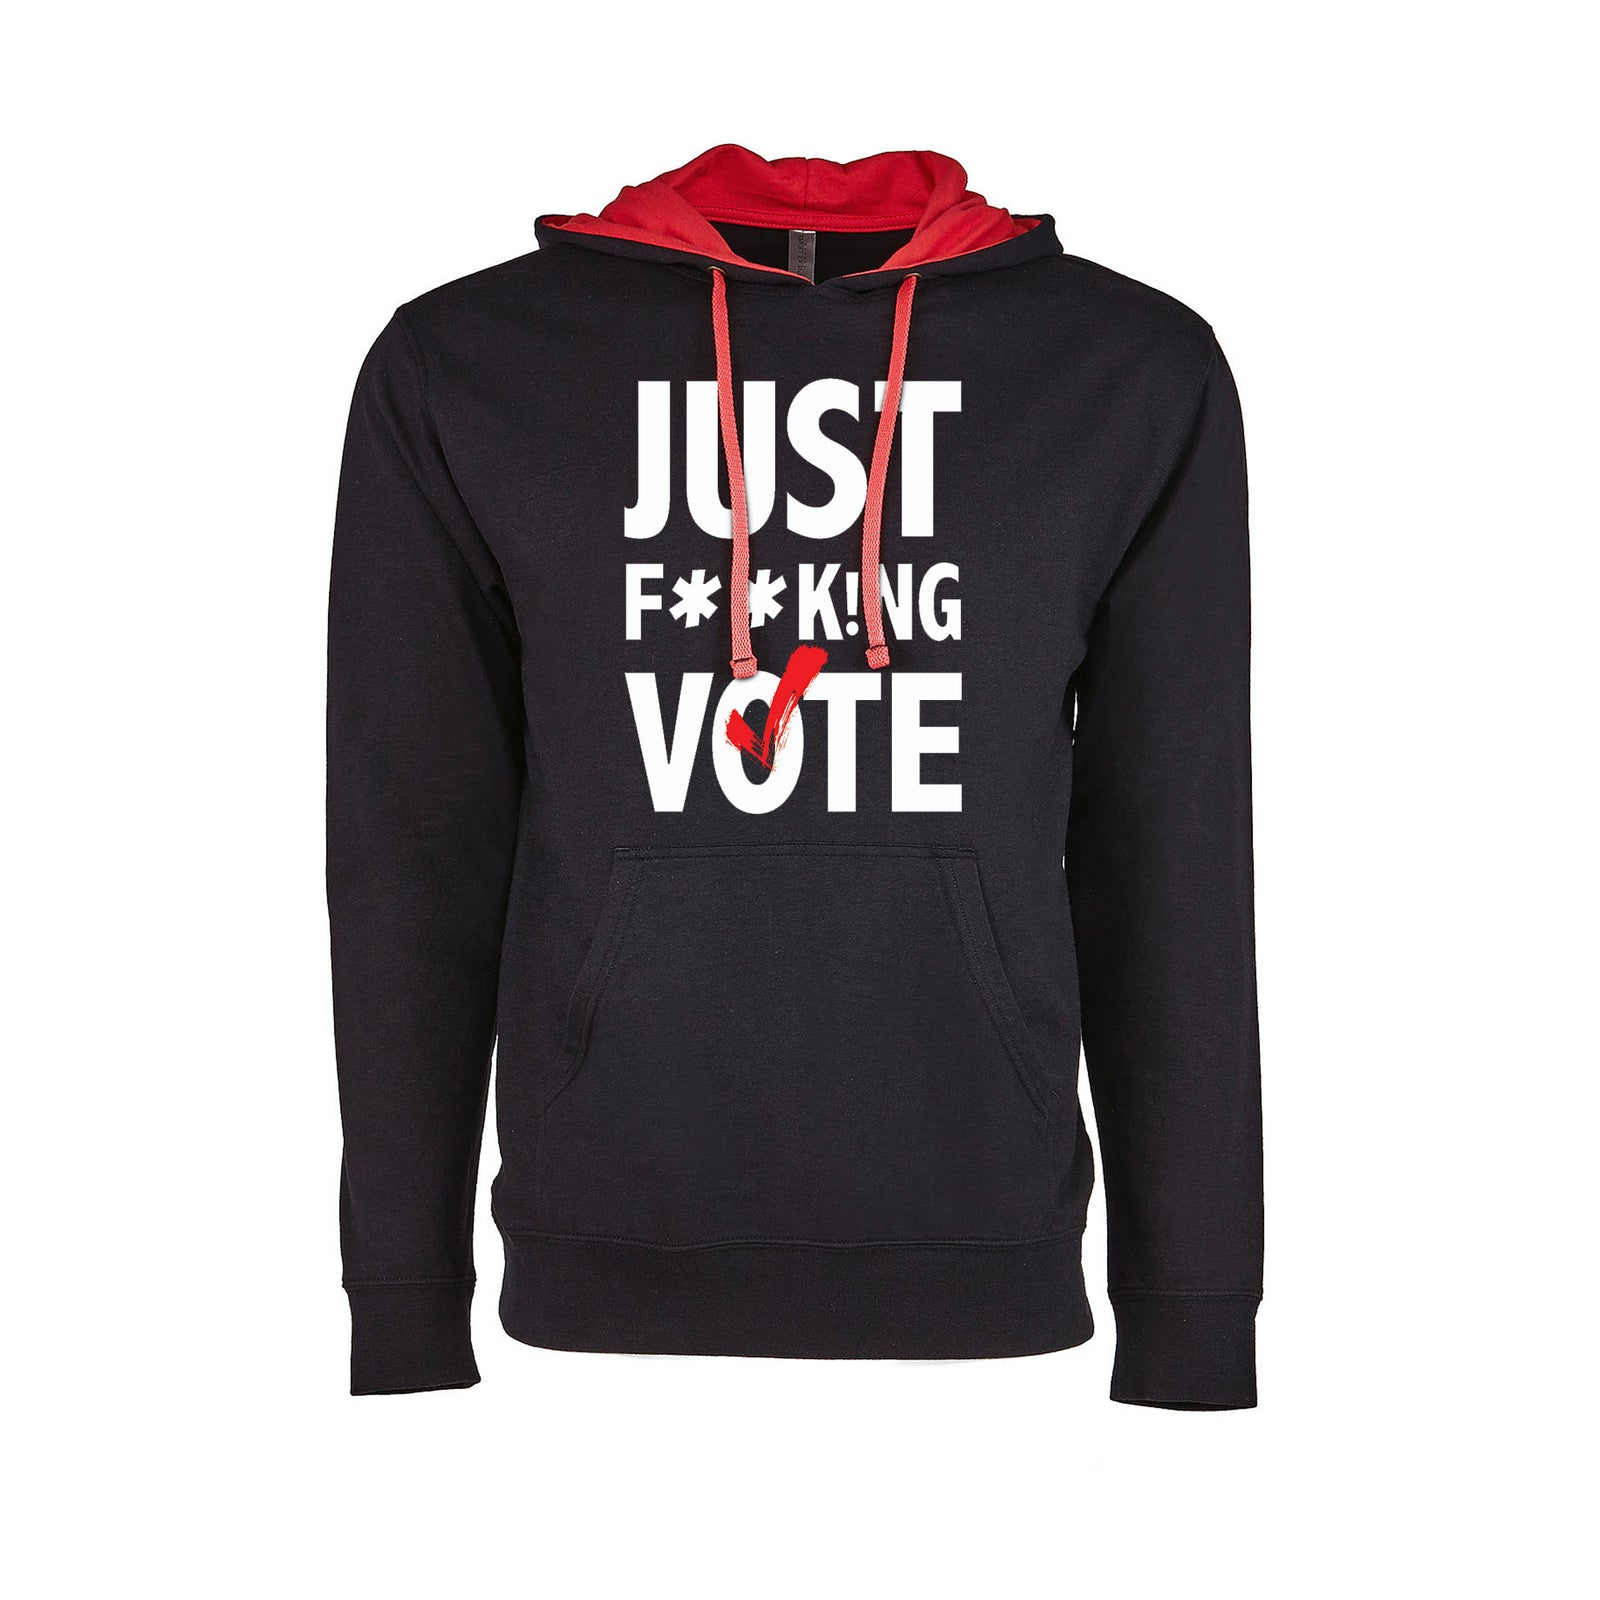 Just F**k!ng Vote [Black] French Terry Pullover Hoodie